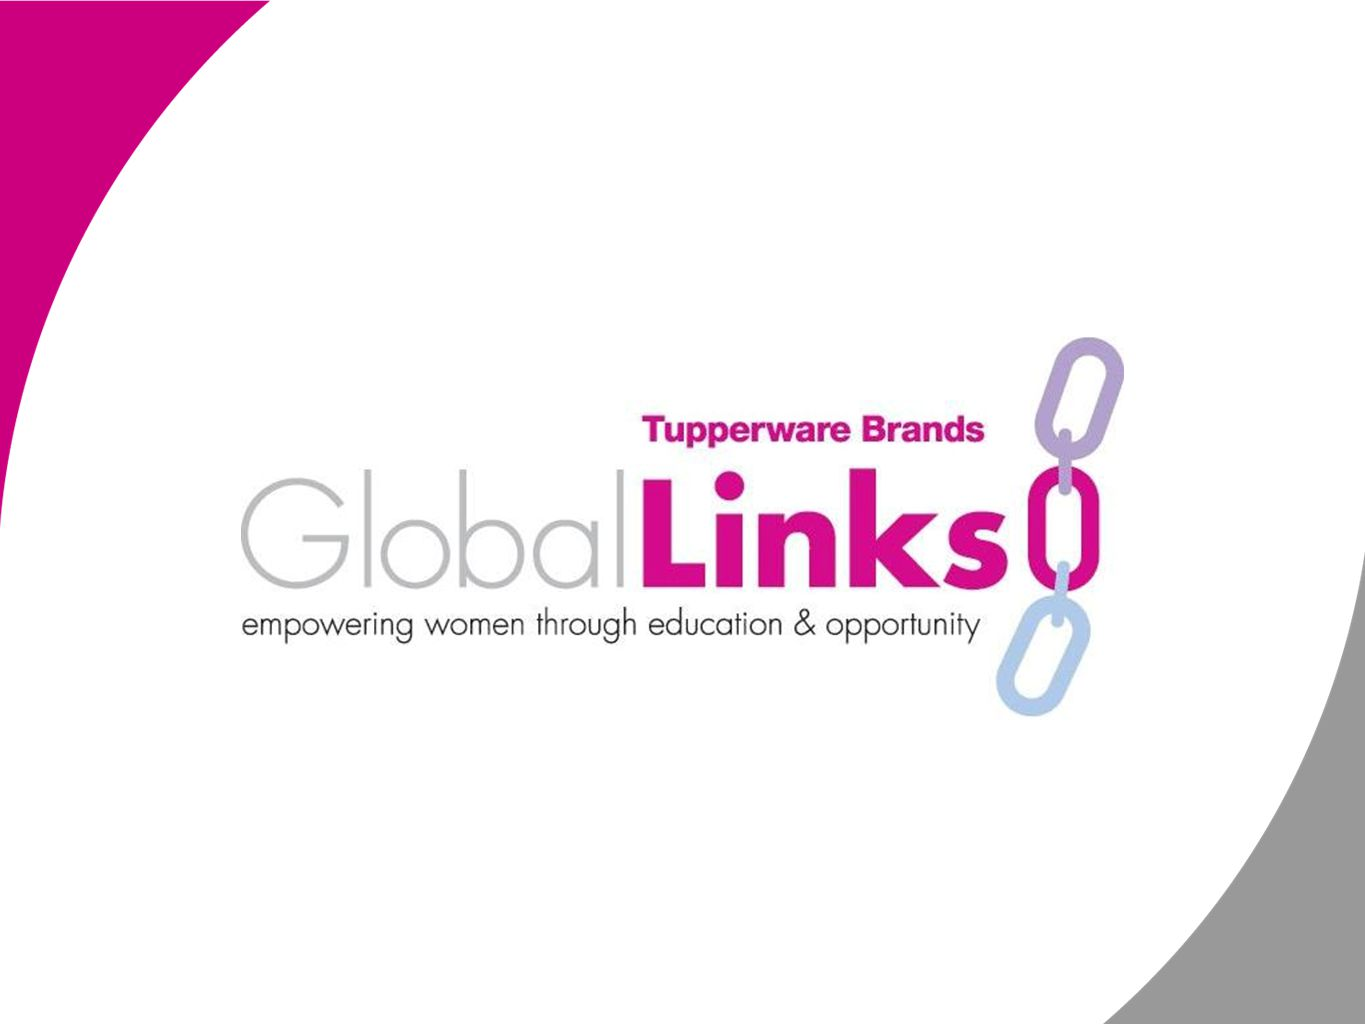 2 Global Links empowers women through education and opportunity.